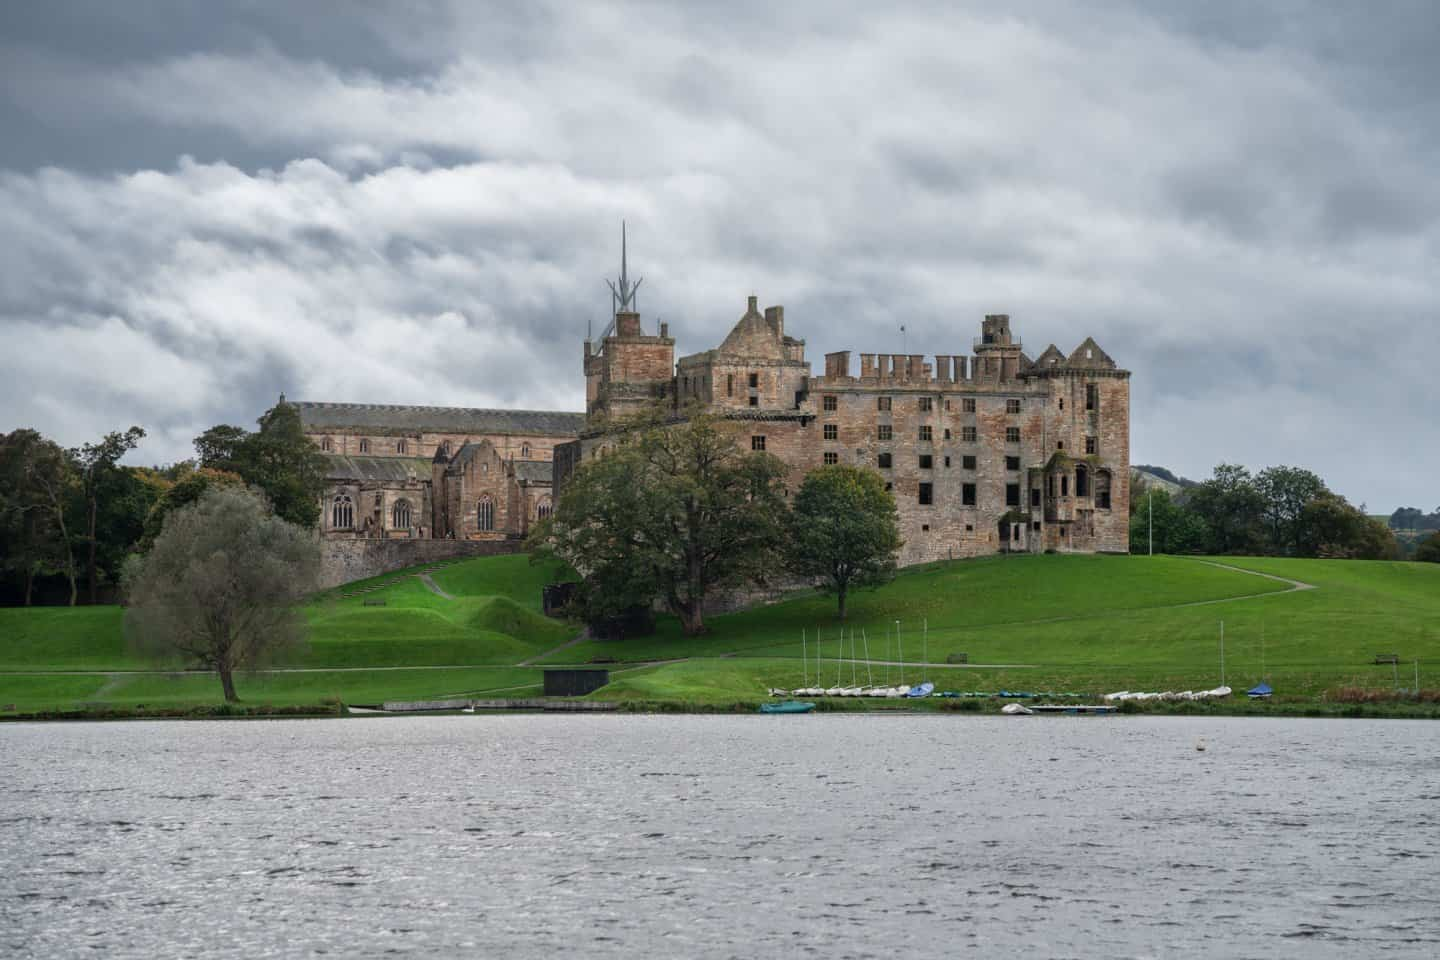 A moody day at Linlithgow Palace.